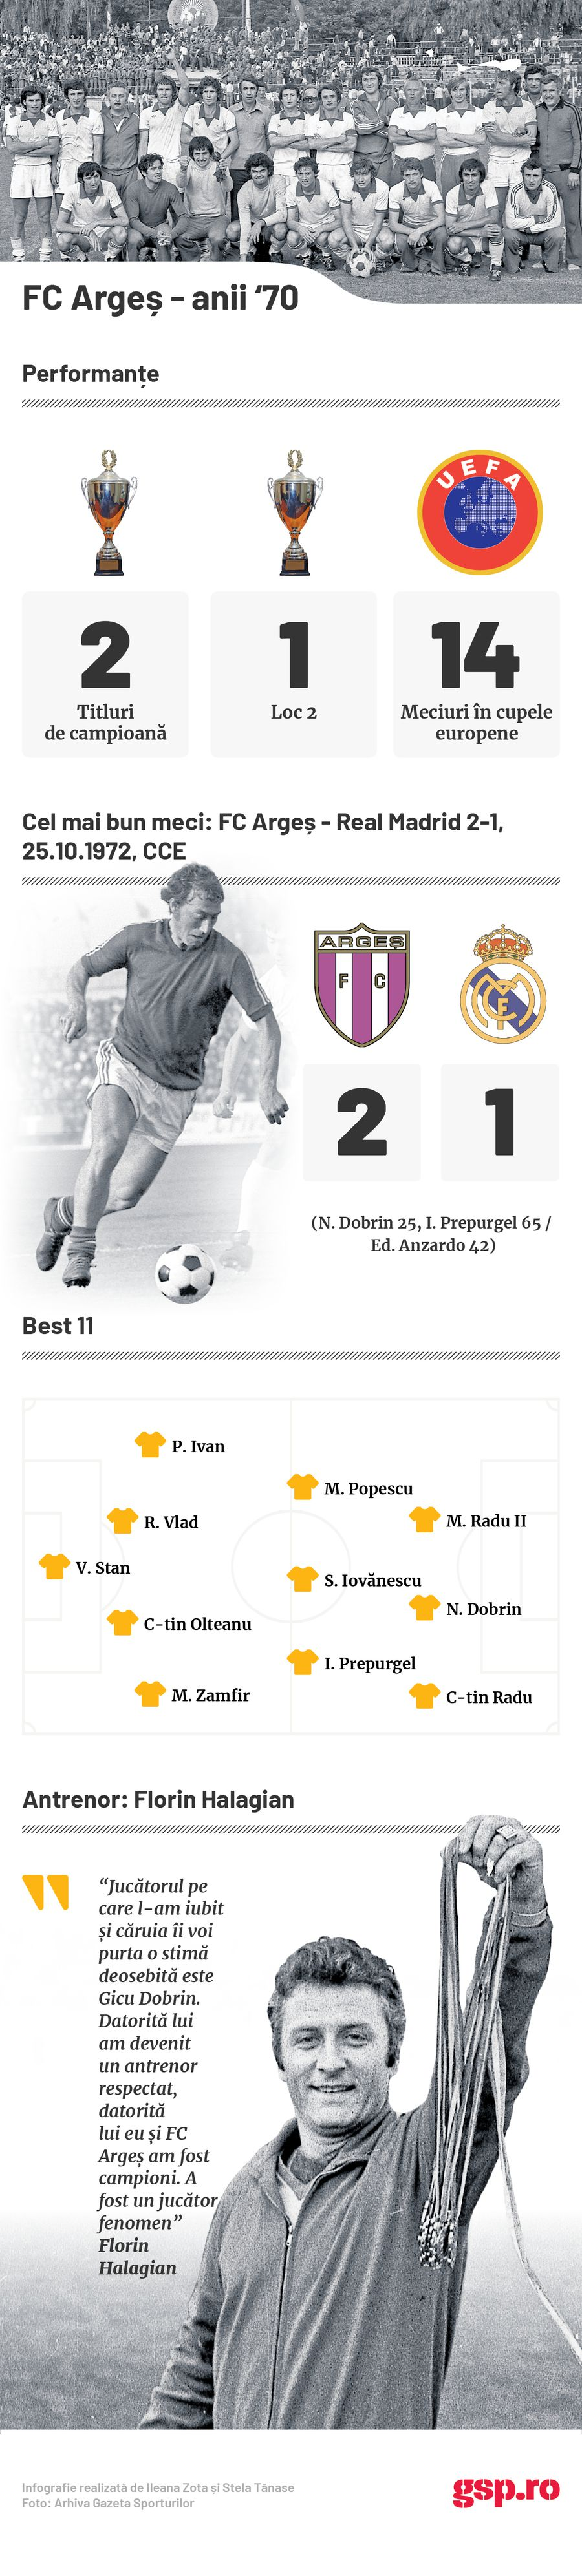 infographic FC Arges 70s